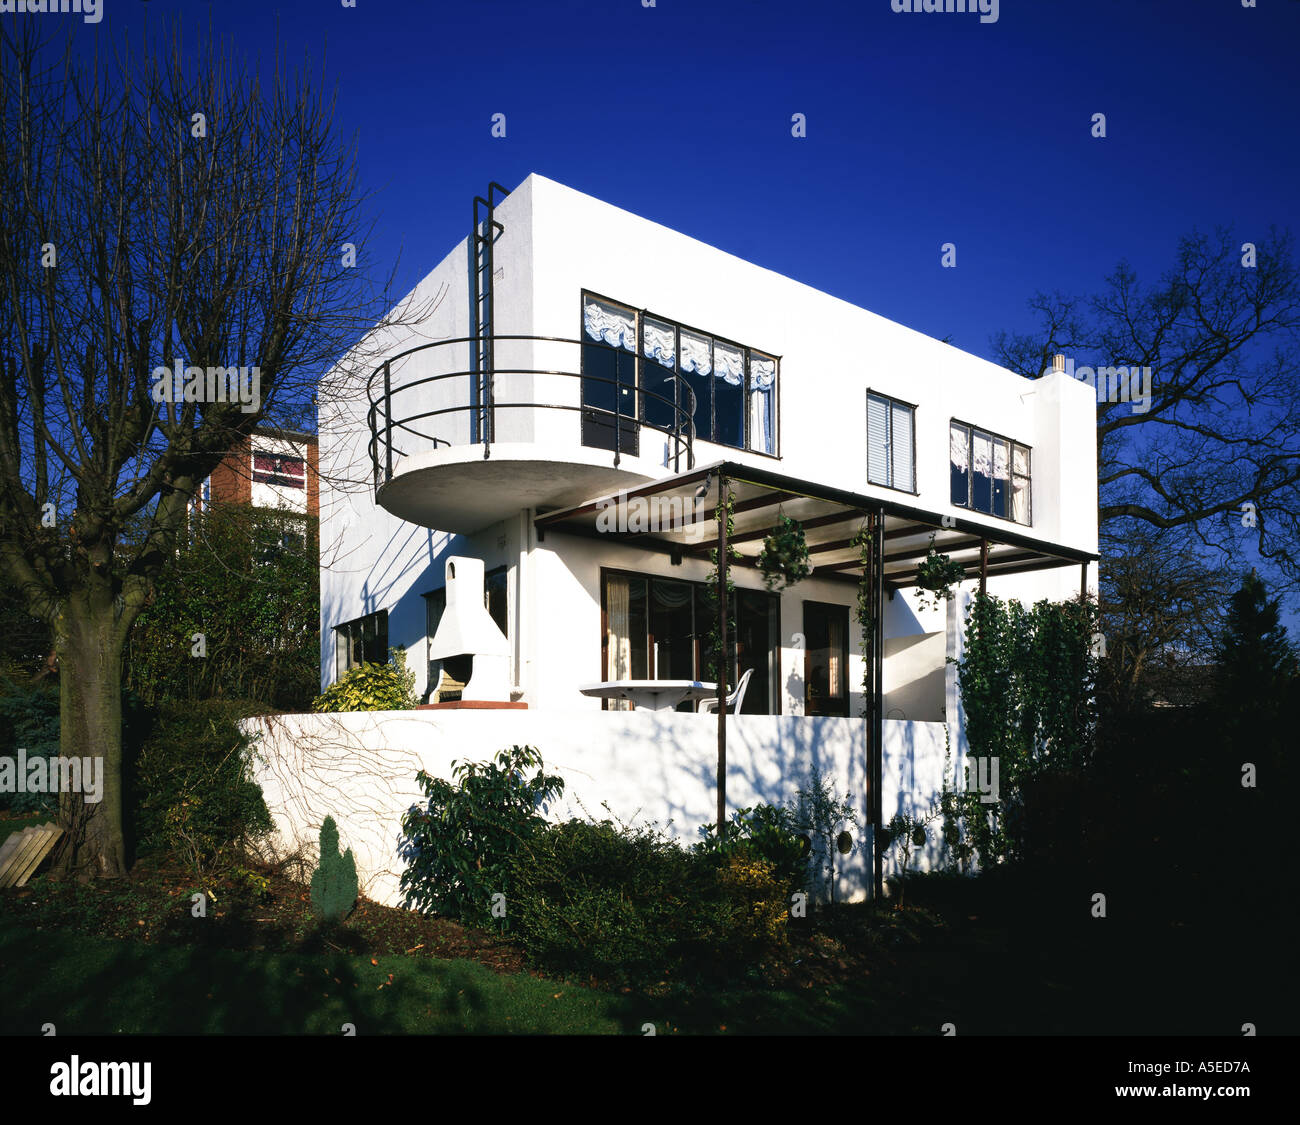 Shann House, Rugby , Warwickshire (1933-34)  inter-war  suburban British Modern Movement private architect designed Stock Photo